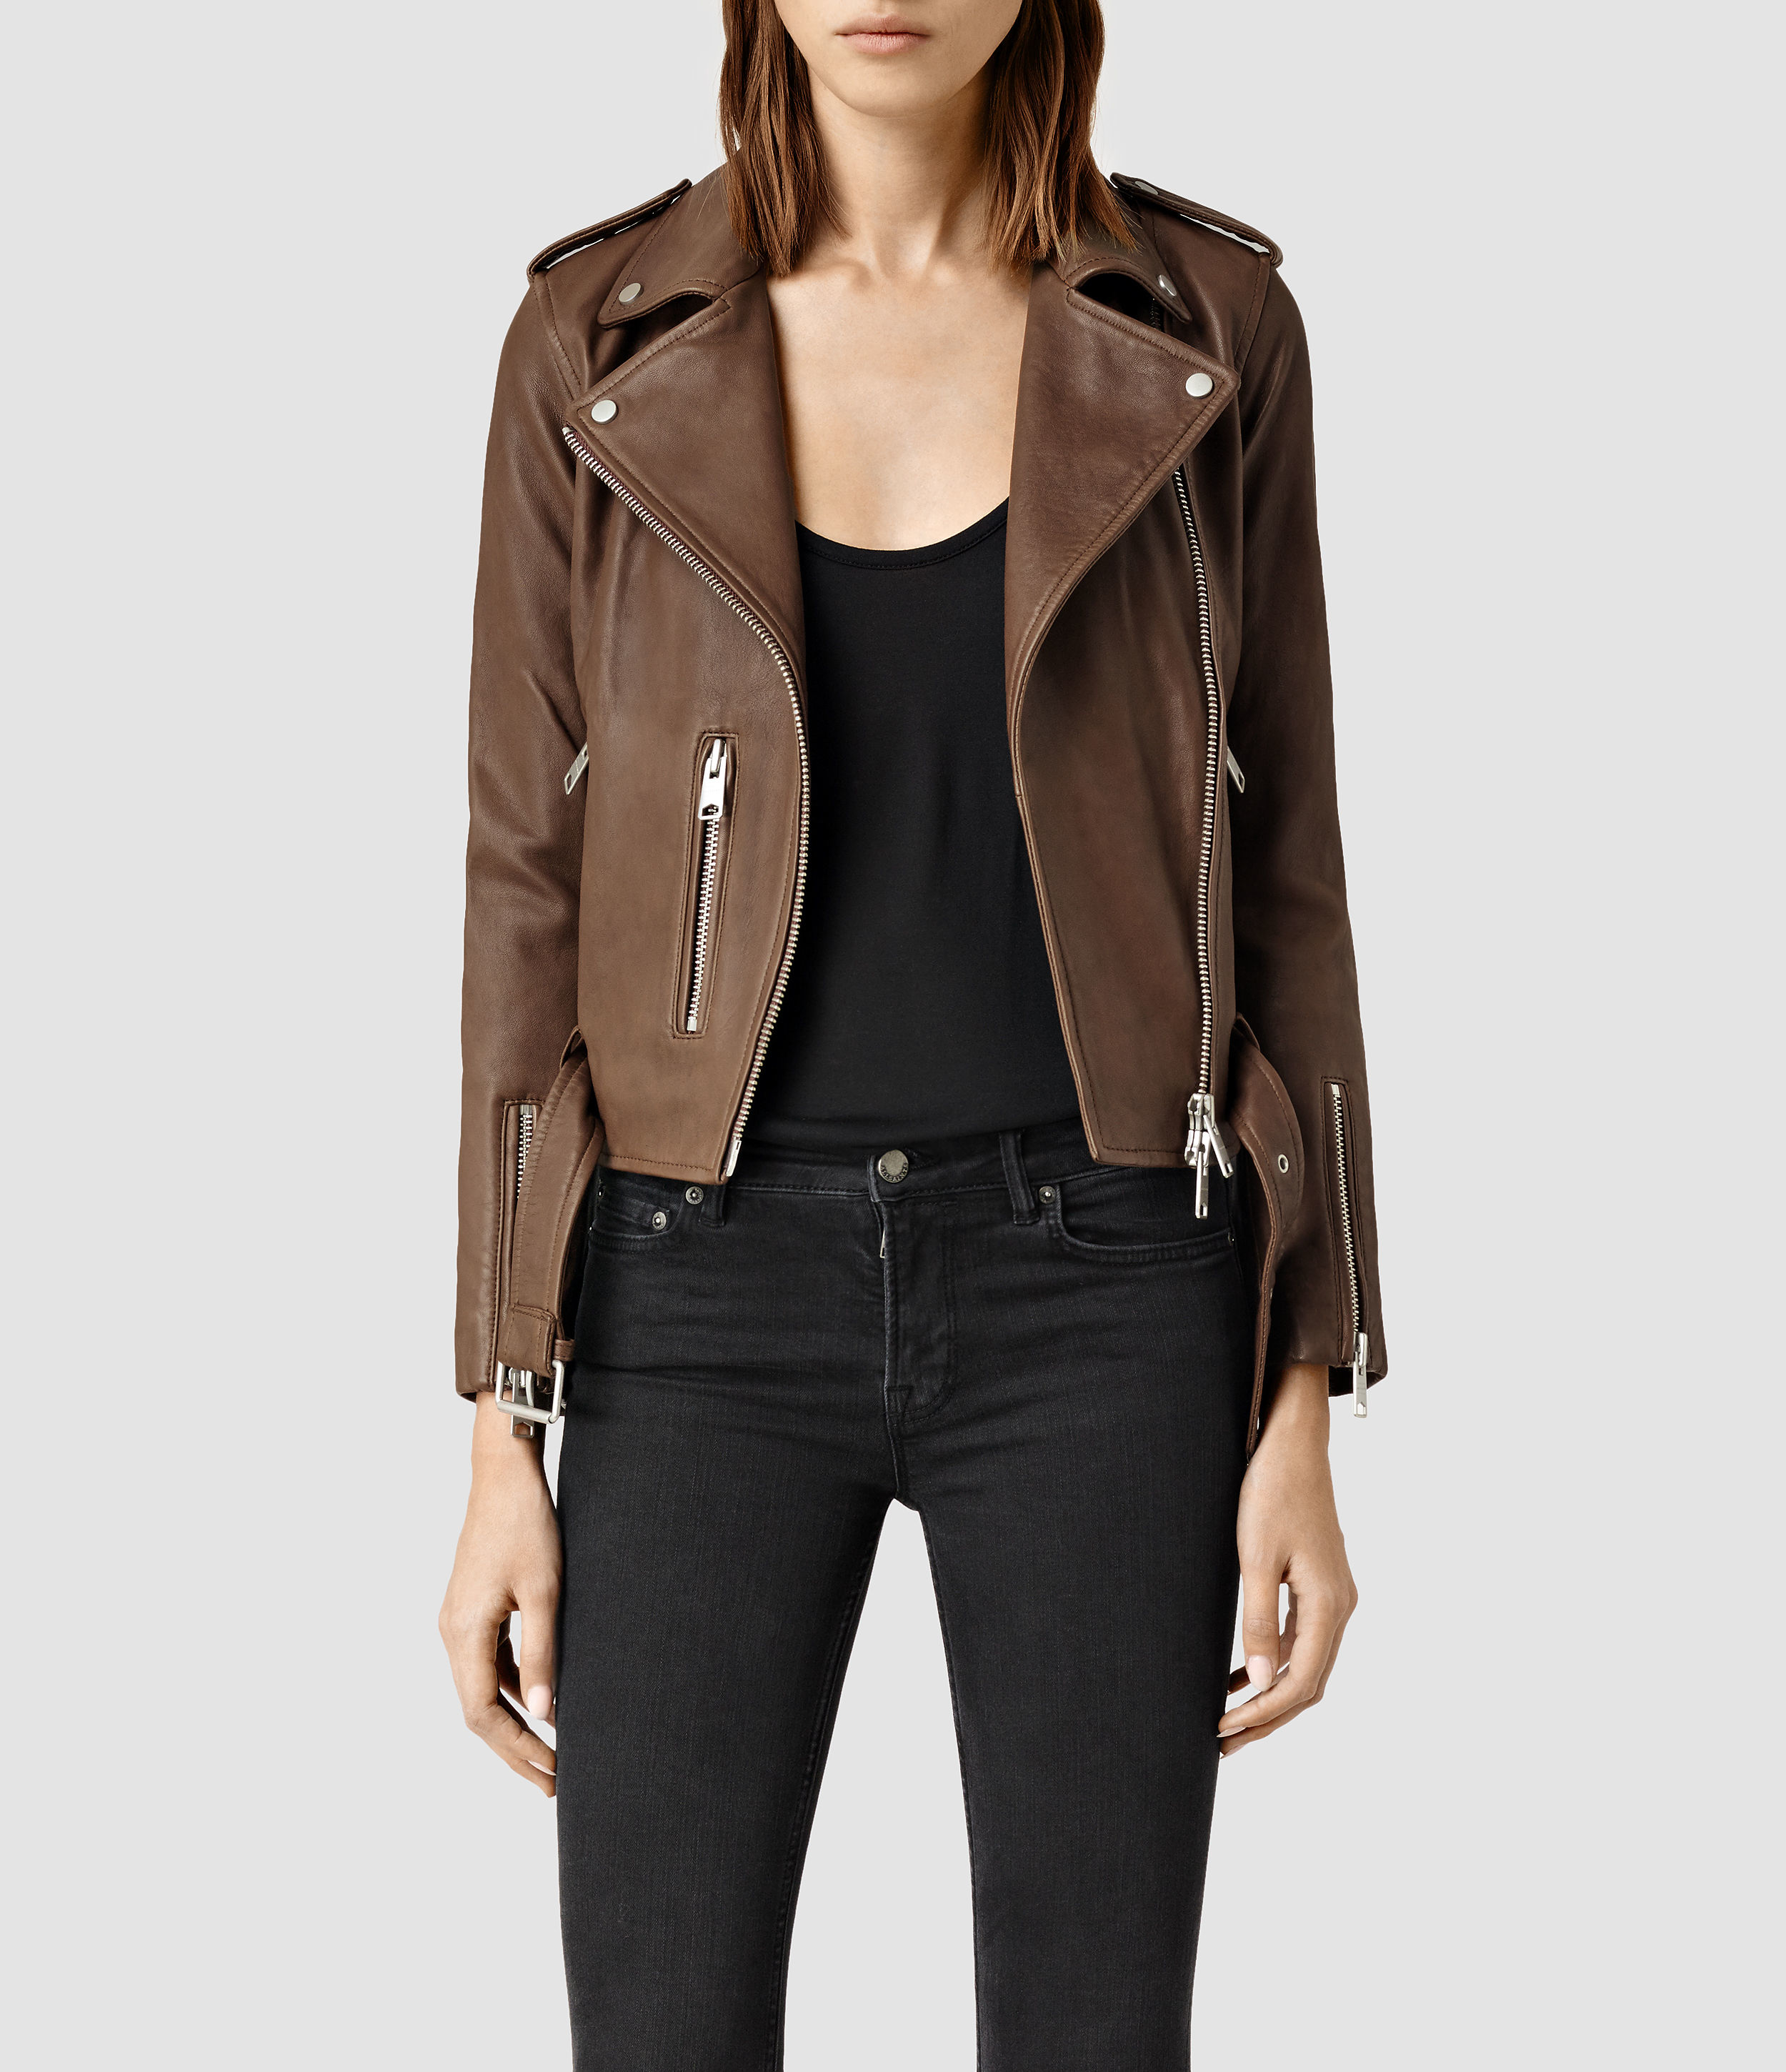 All leather jackets